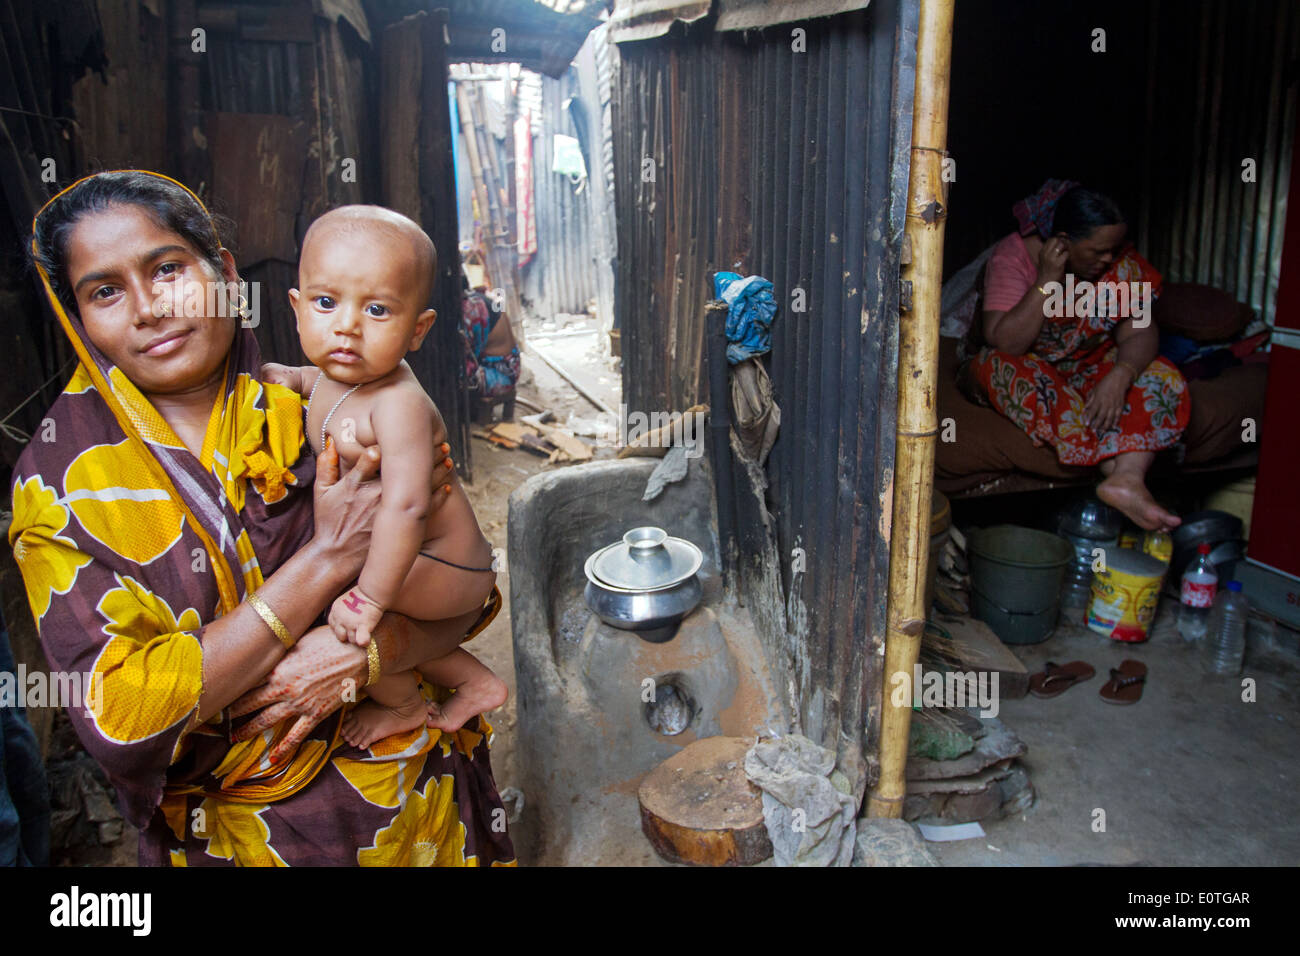 Bangladeshi people in shanty part of Dhaka living in extreme poverty. - Stock Image